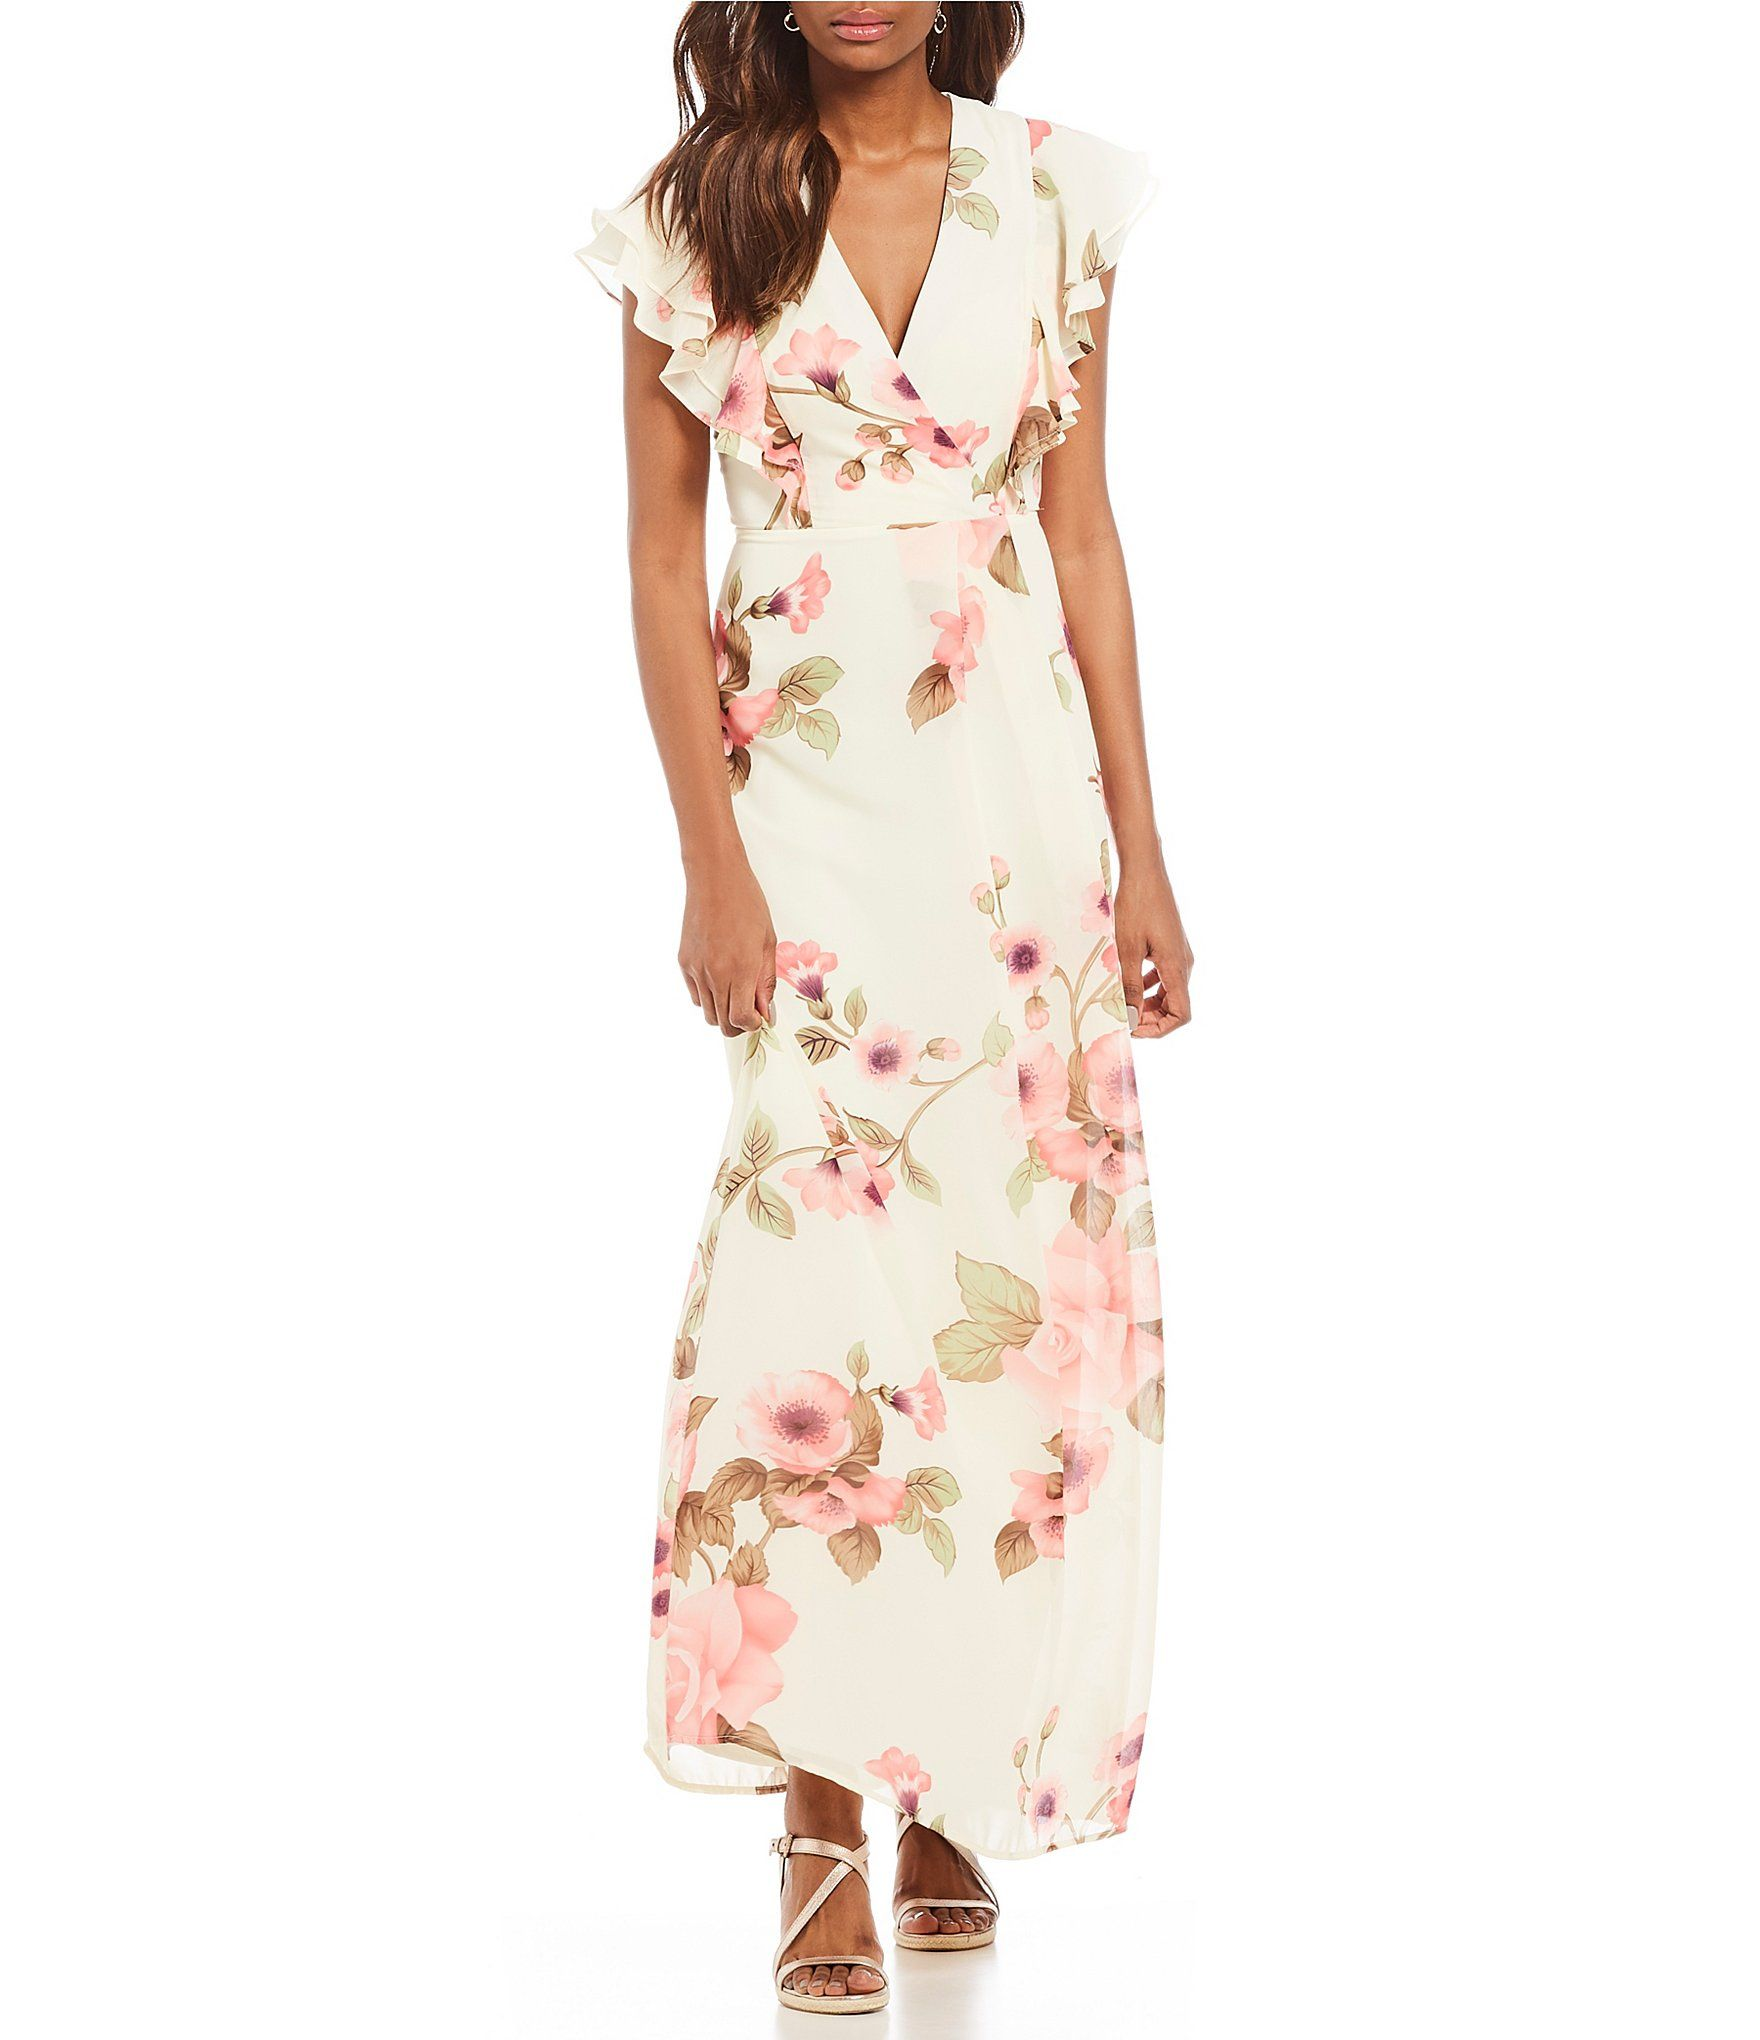 975259d7798d Shop for Leslie Fay Flutter Sleeve Floral Print Maxi Dress at Dillards.com.  Visit Dillards.com to find clothing, accessories, shoes, cosmetics & more.